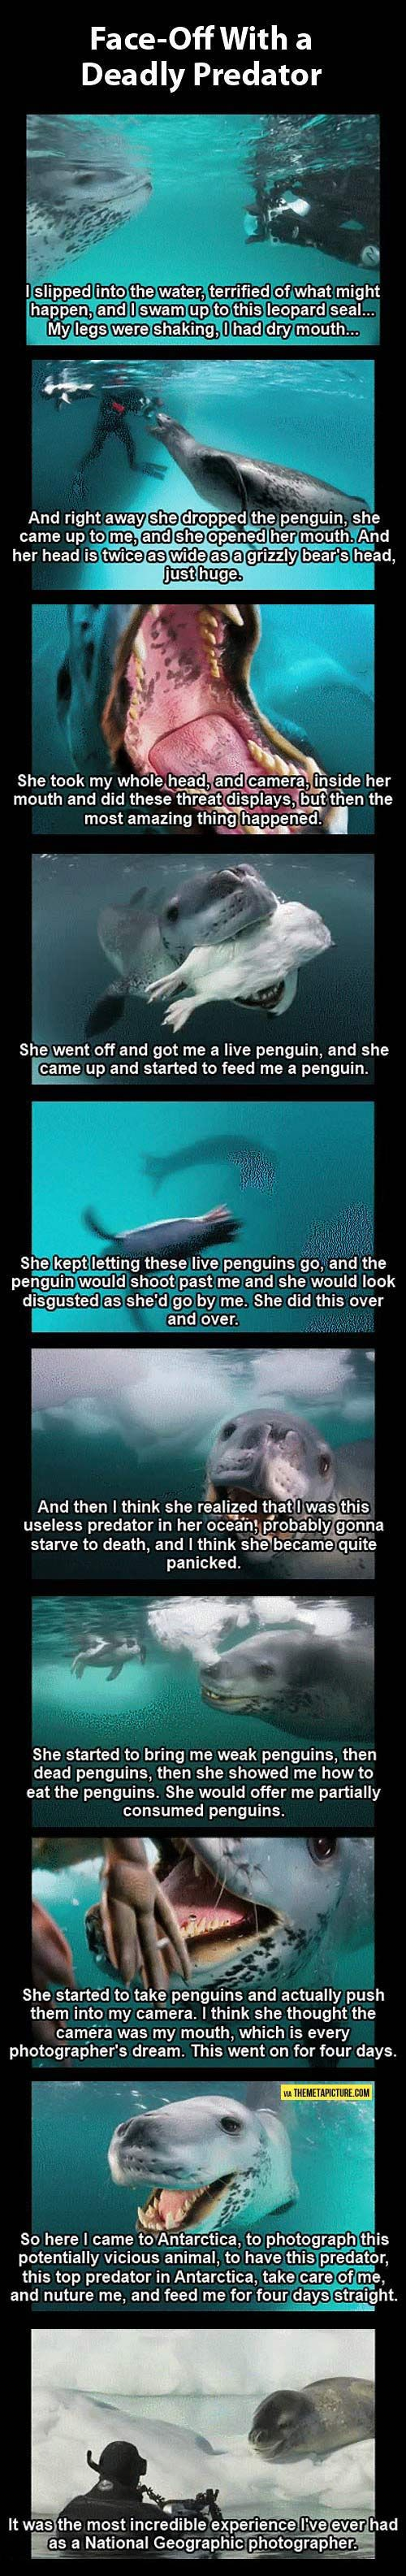 That poor seal was afraid his new friend was too stupid to live!